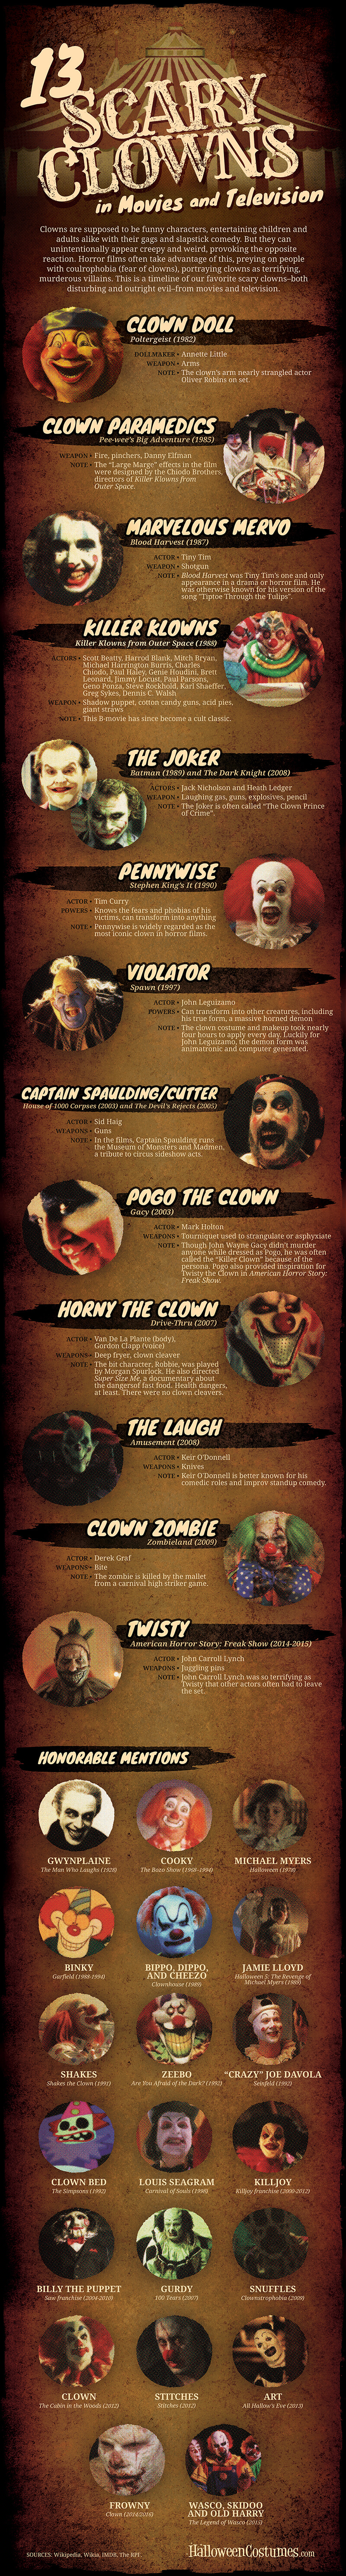 13-scary-clowns-infographic-2